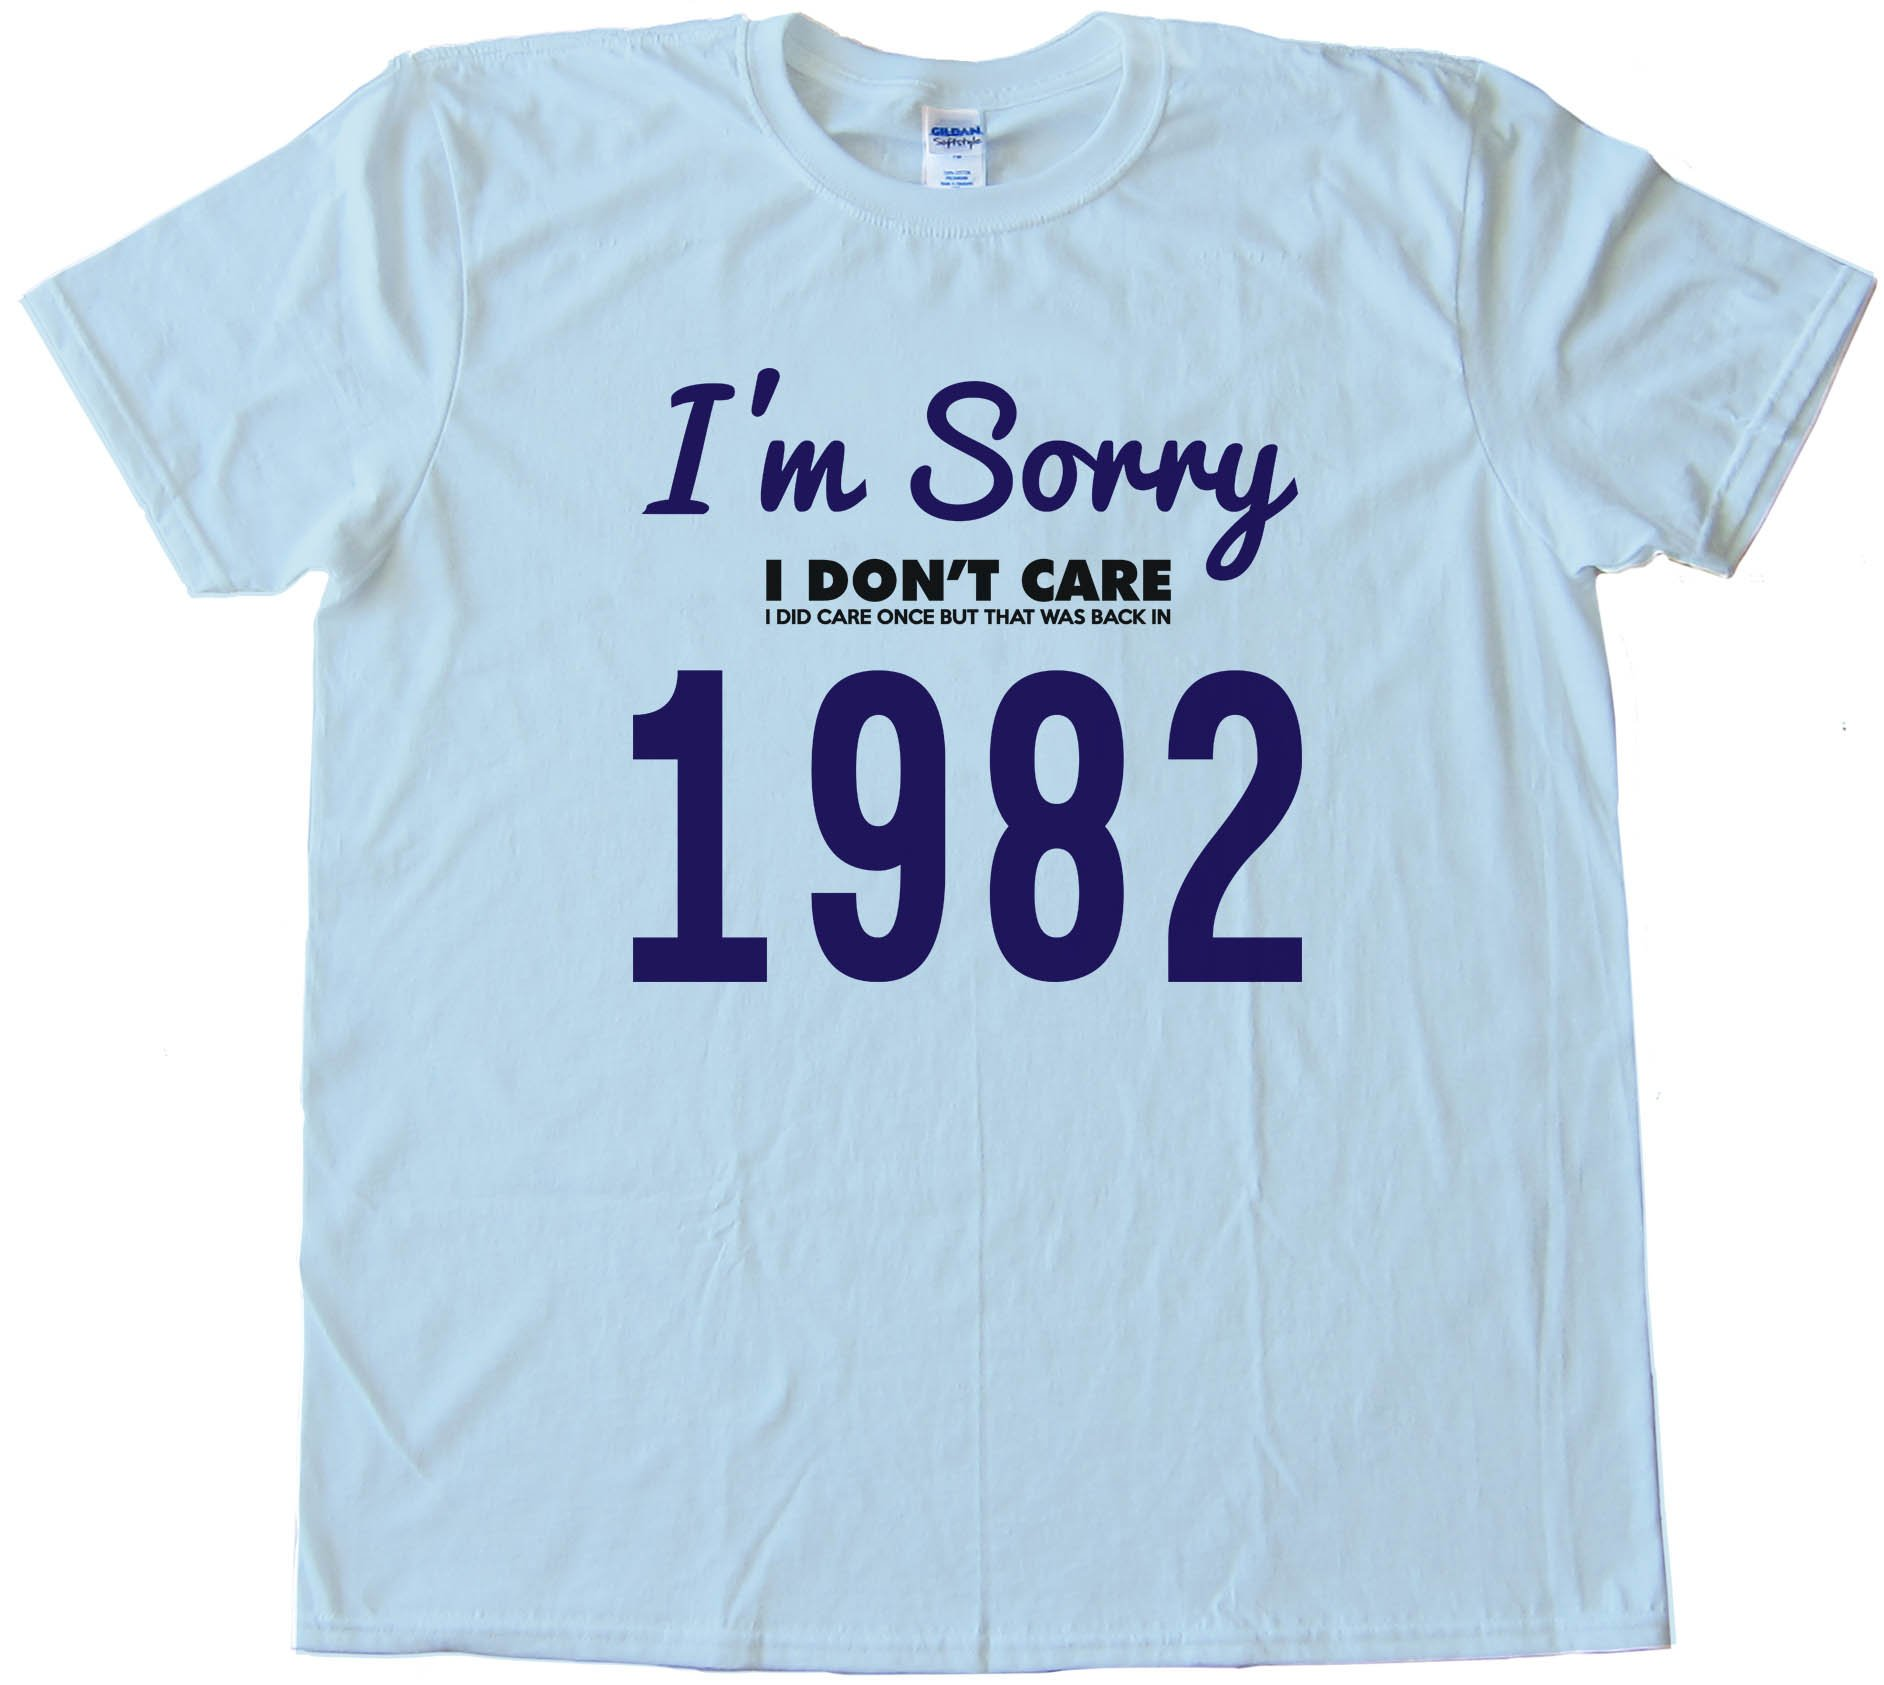 I'M Sorry I Don'T Care - I Did Care Once But That Was Back In 1982 - Tee Shirt